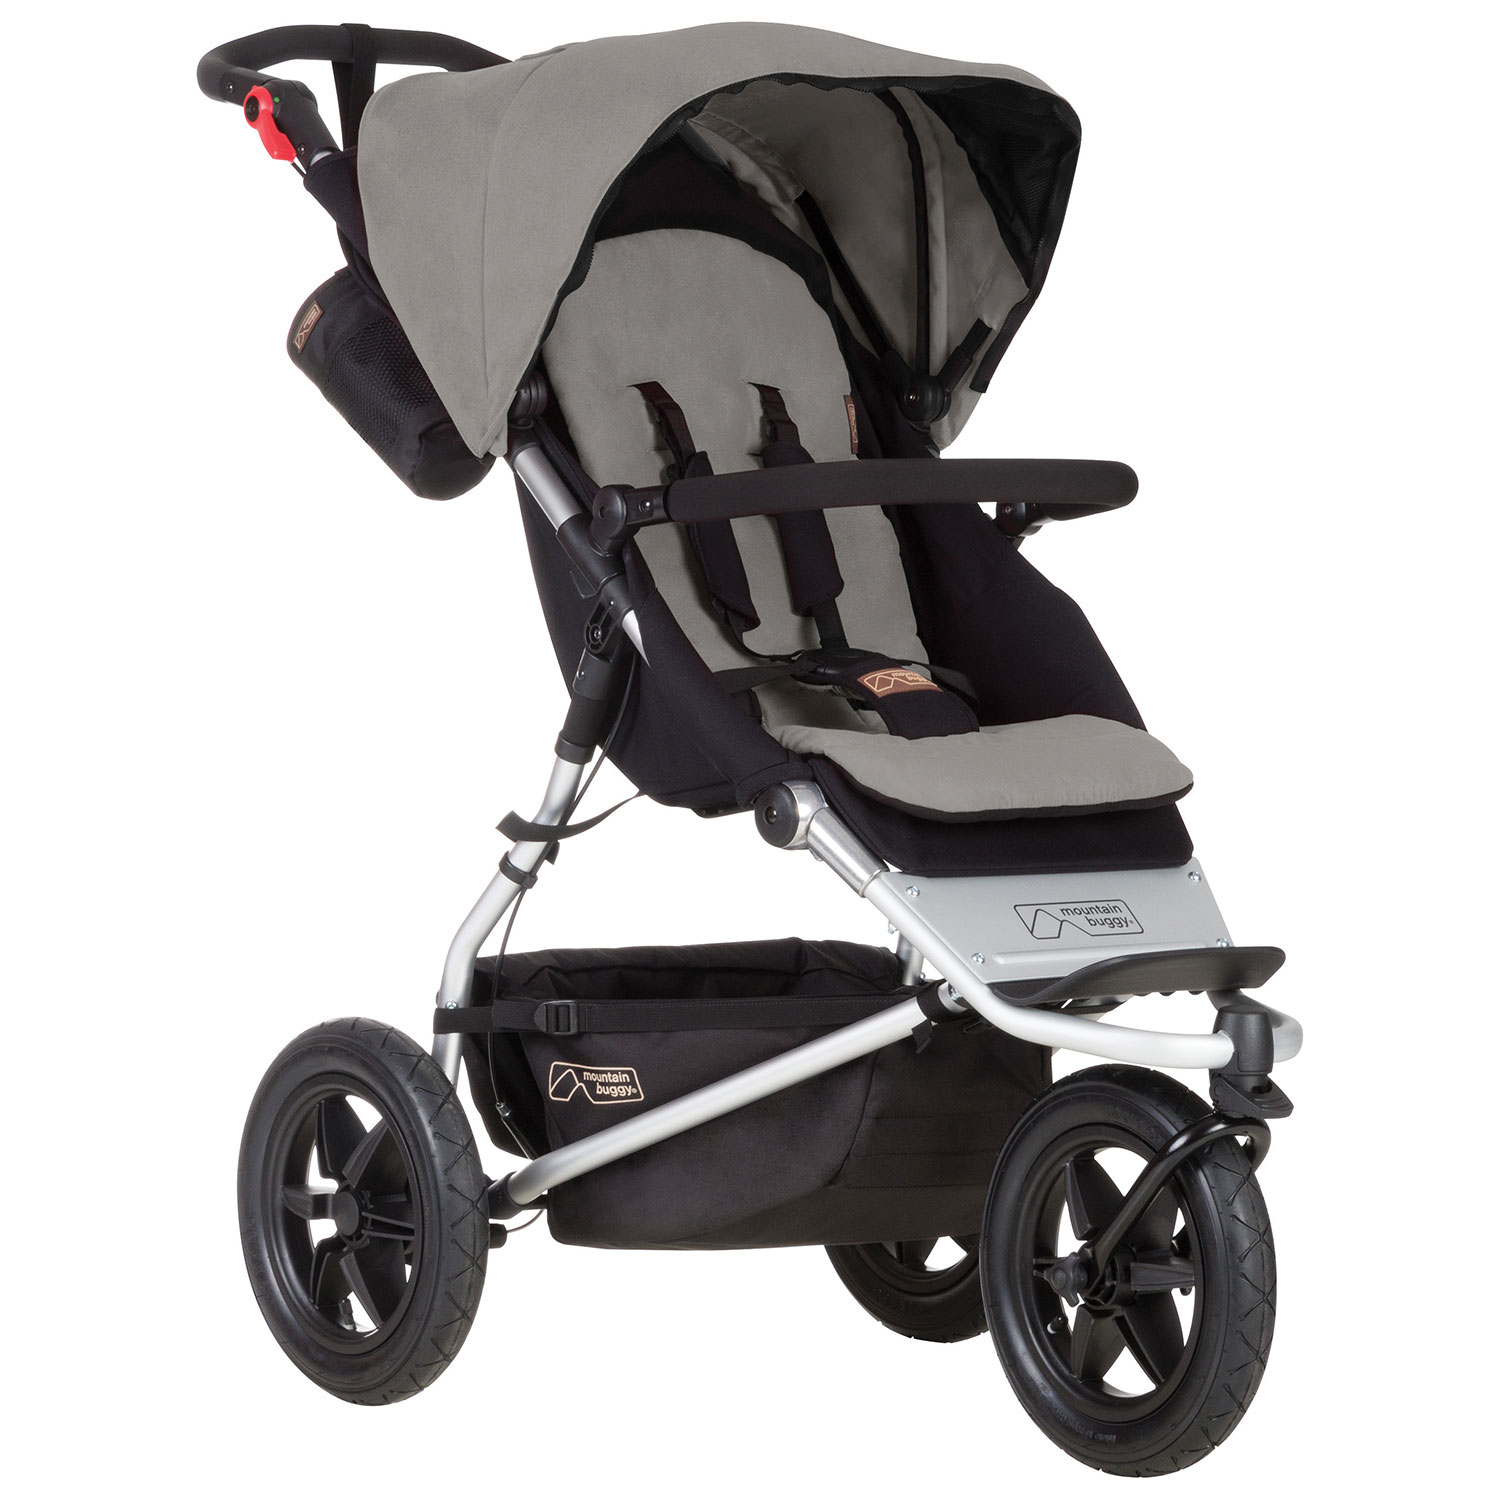 Strollers: Shop Baby Strollers & Accessories - Best Buy Canada